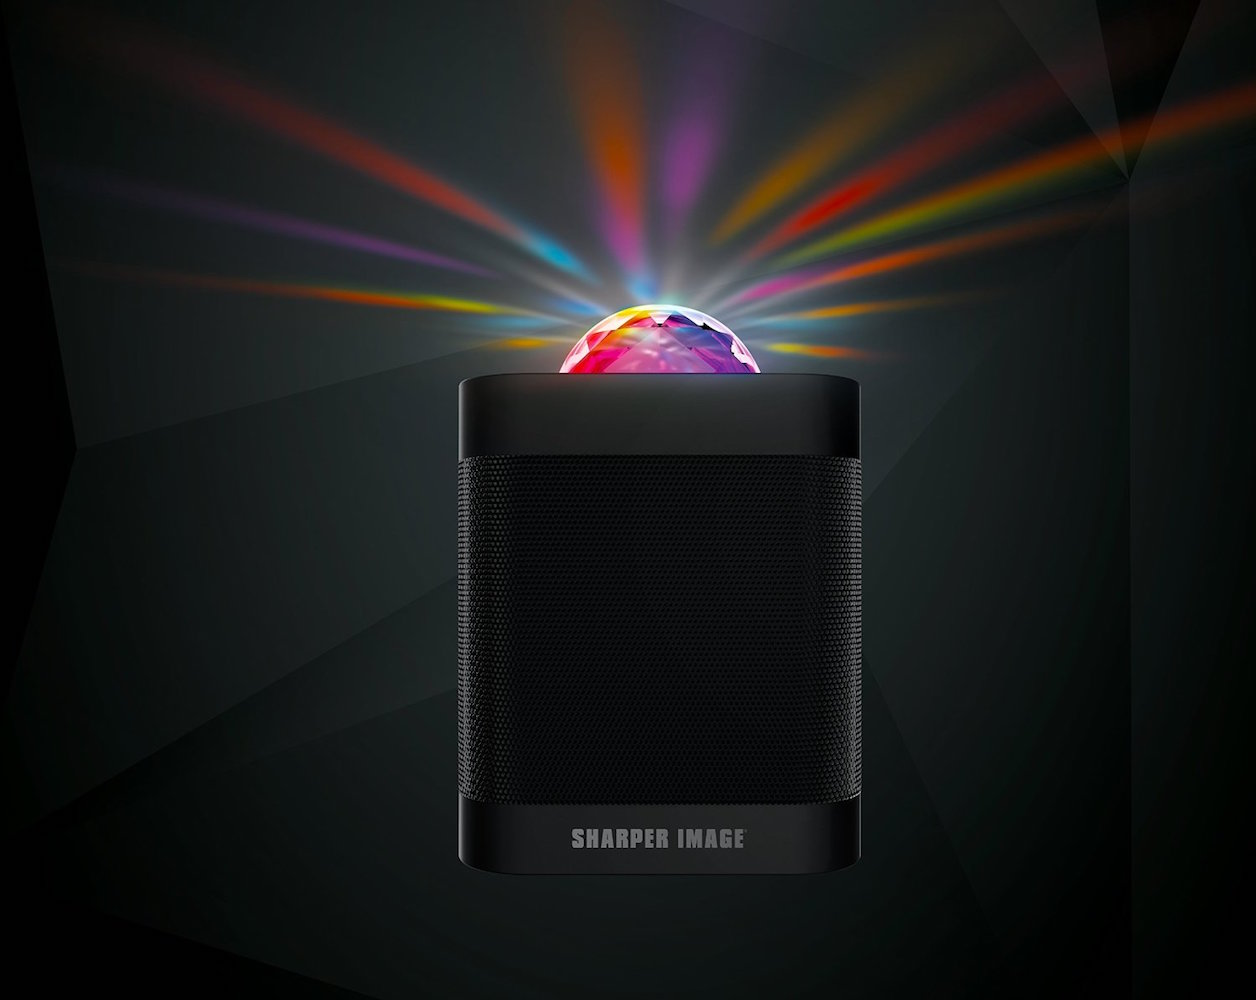 bluetooth-speaker-with-led-light-show-from-sharper-image-04